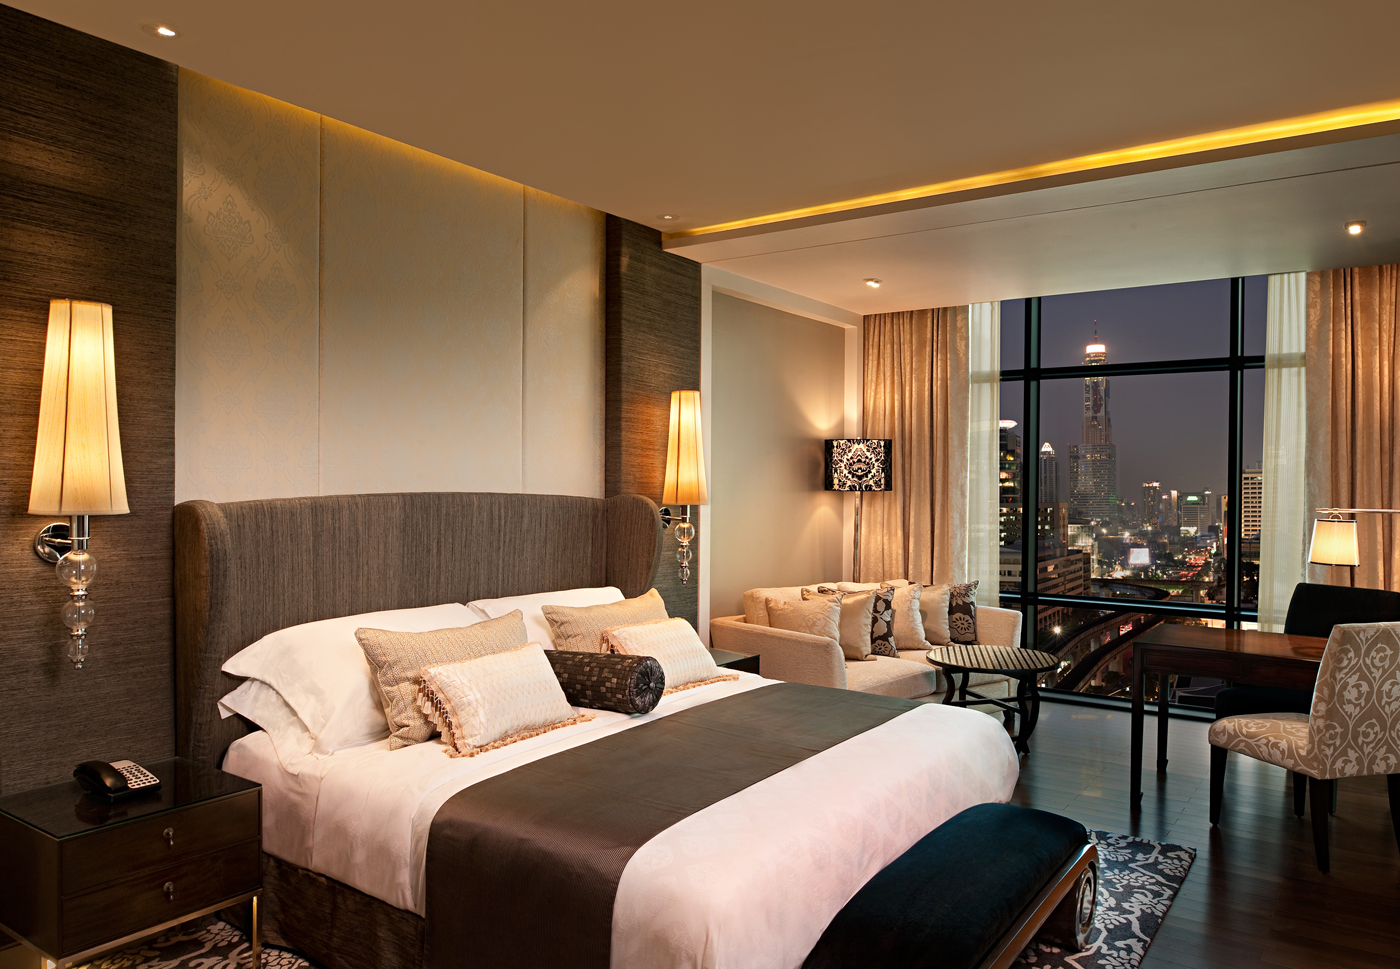 Thailand S First St Regis Hotel Makes Debut World